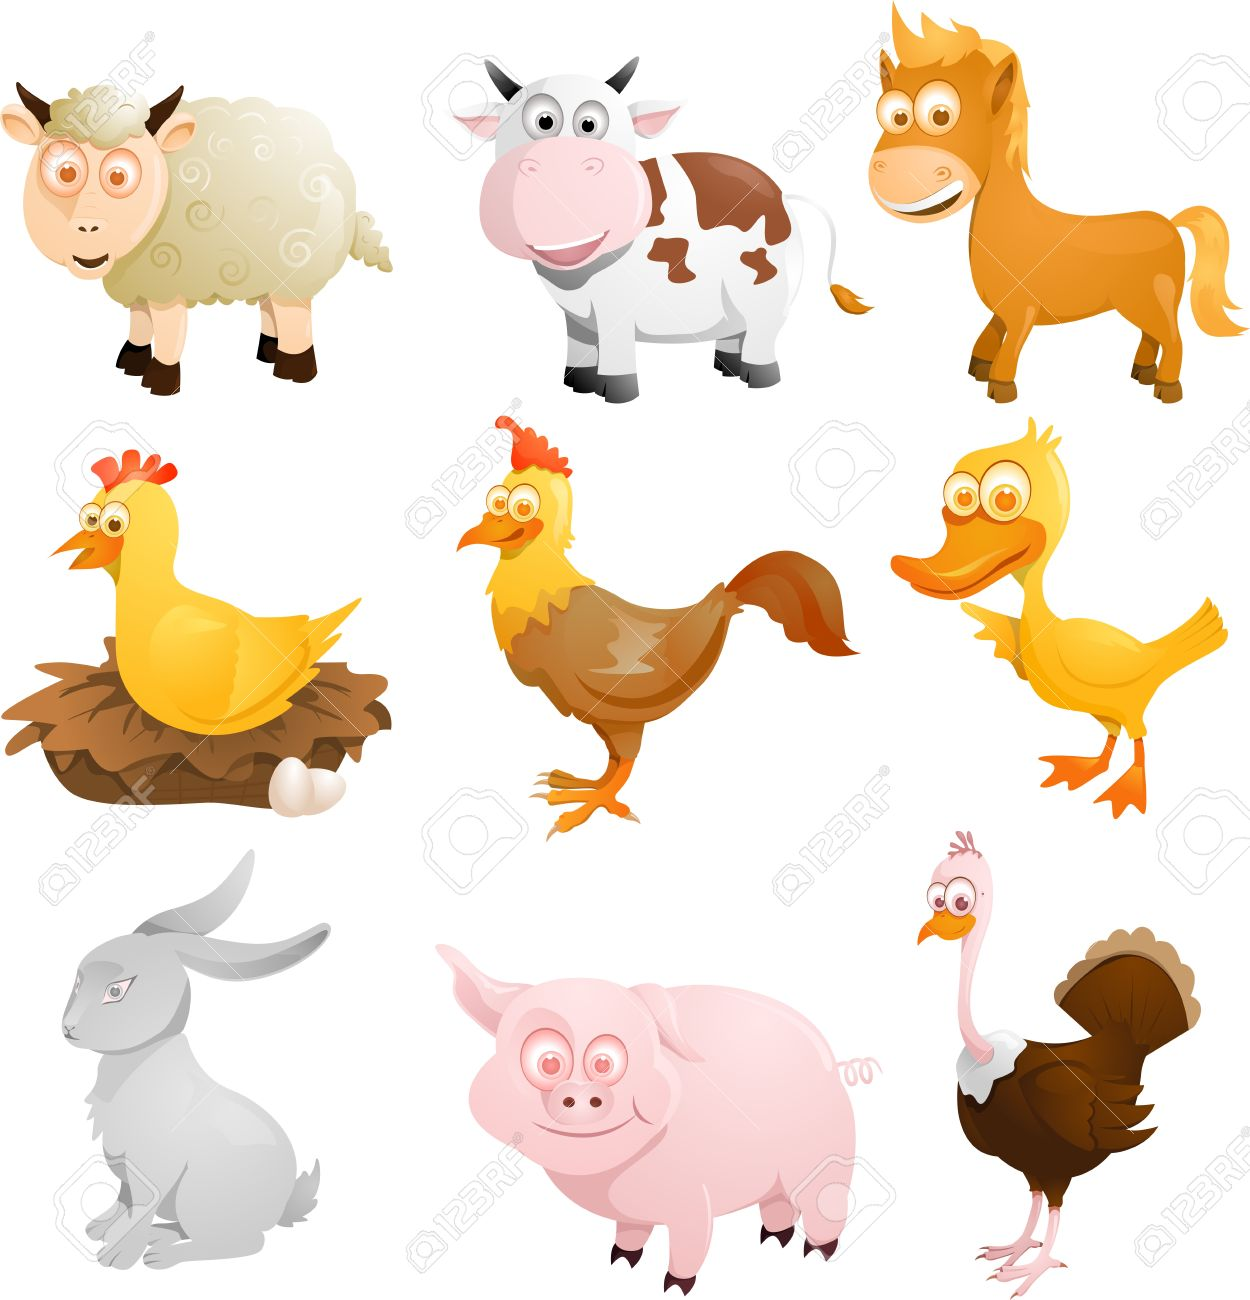 animal group clipart - photo #8